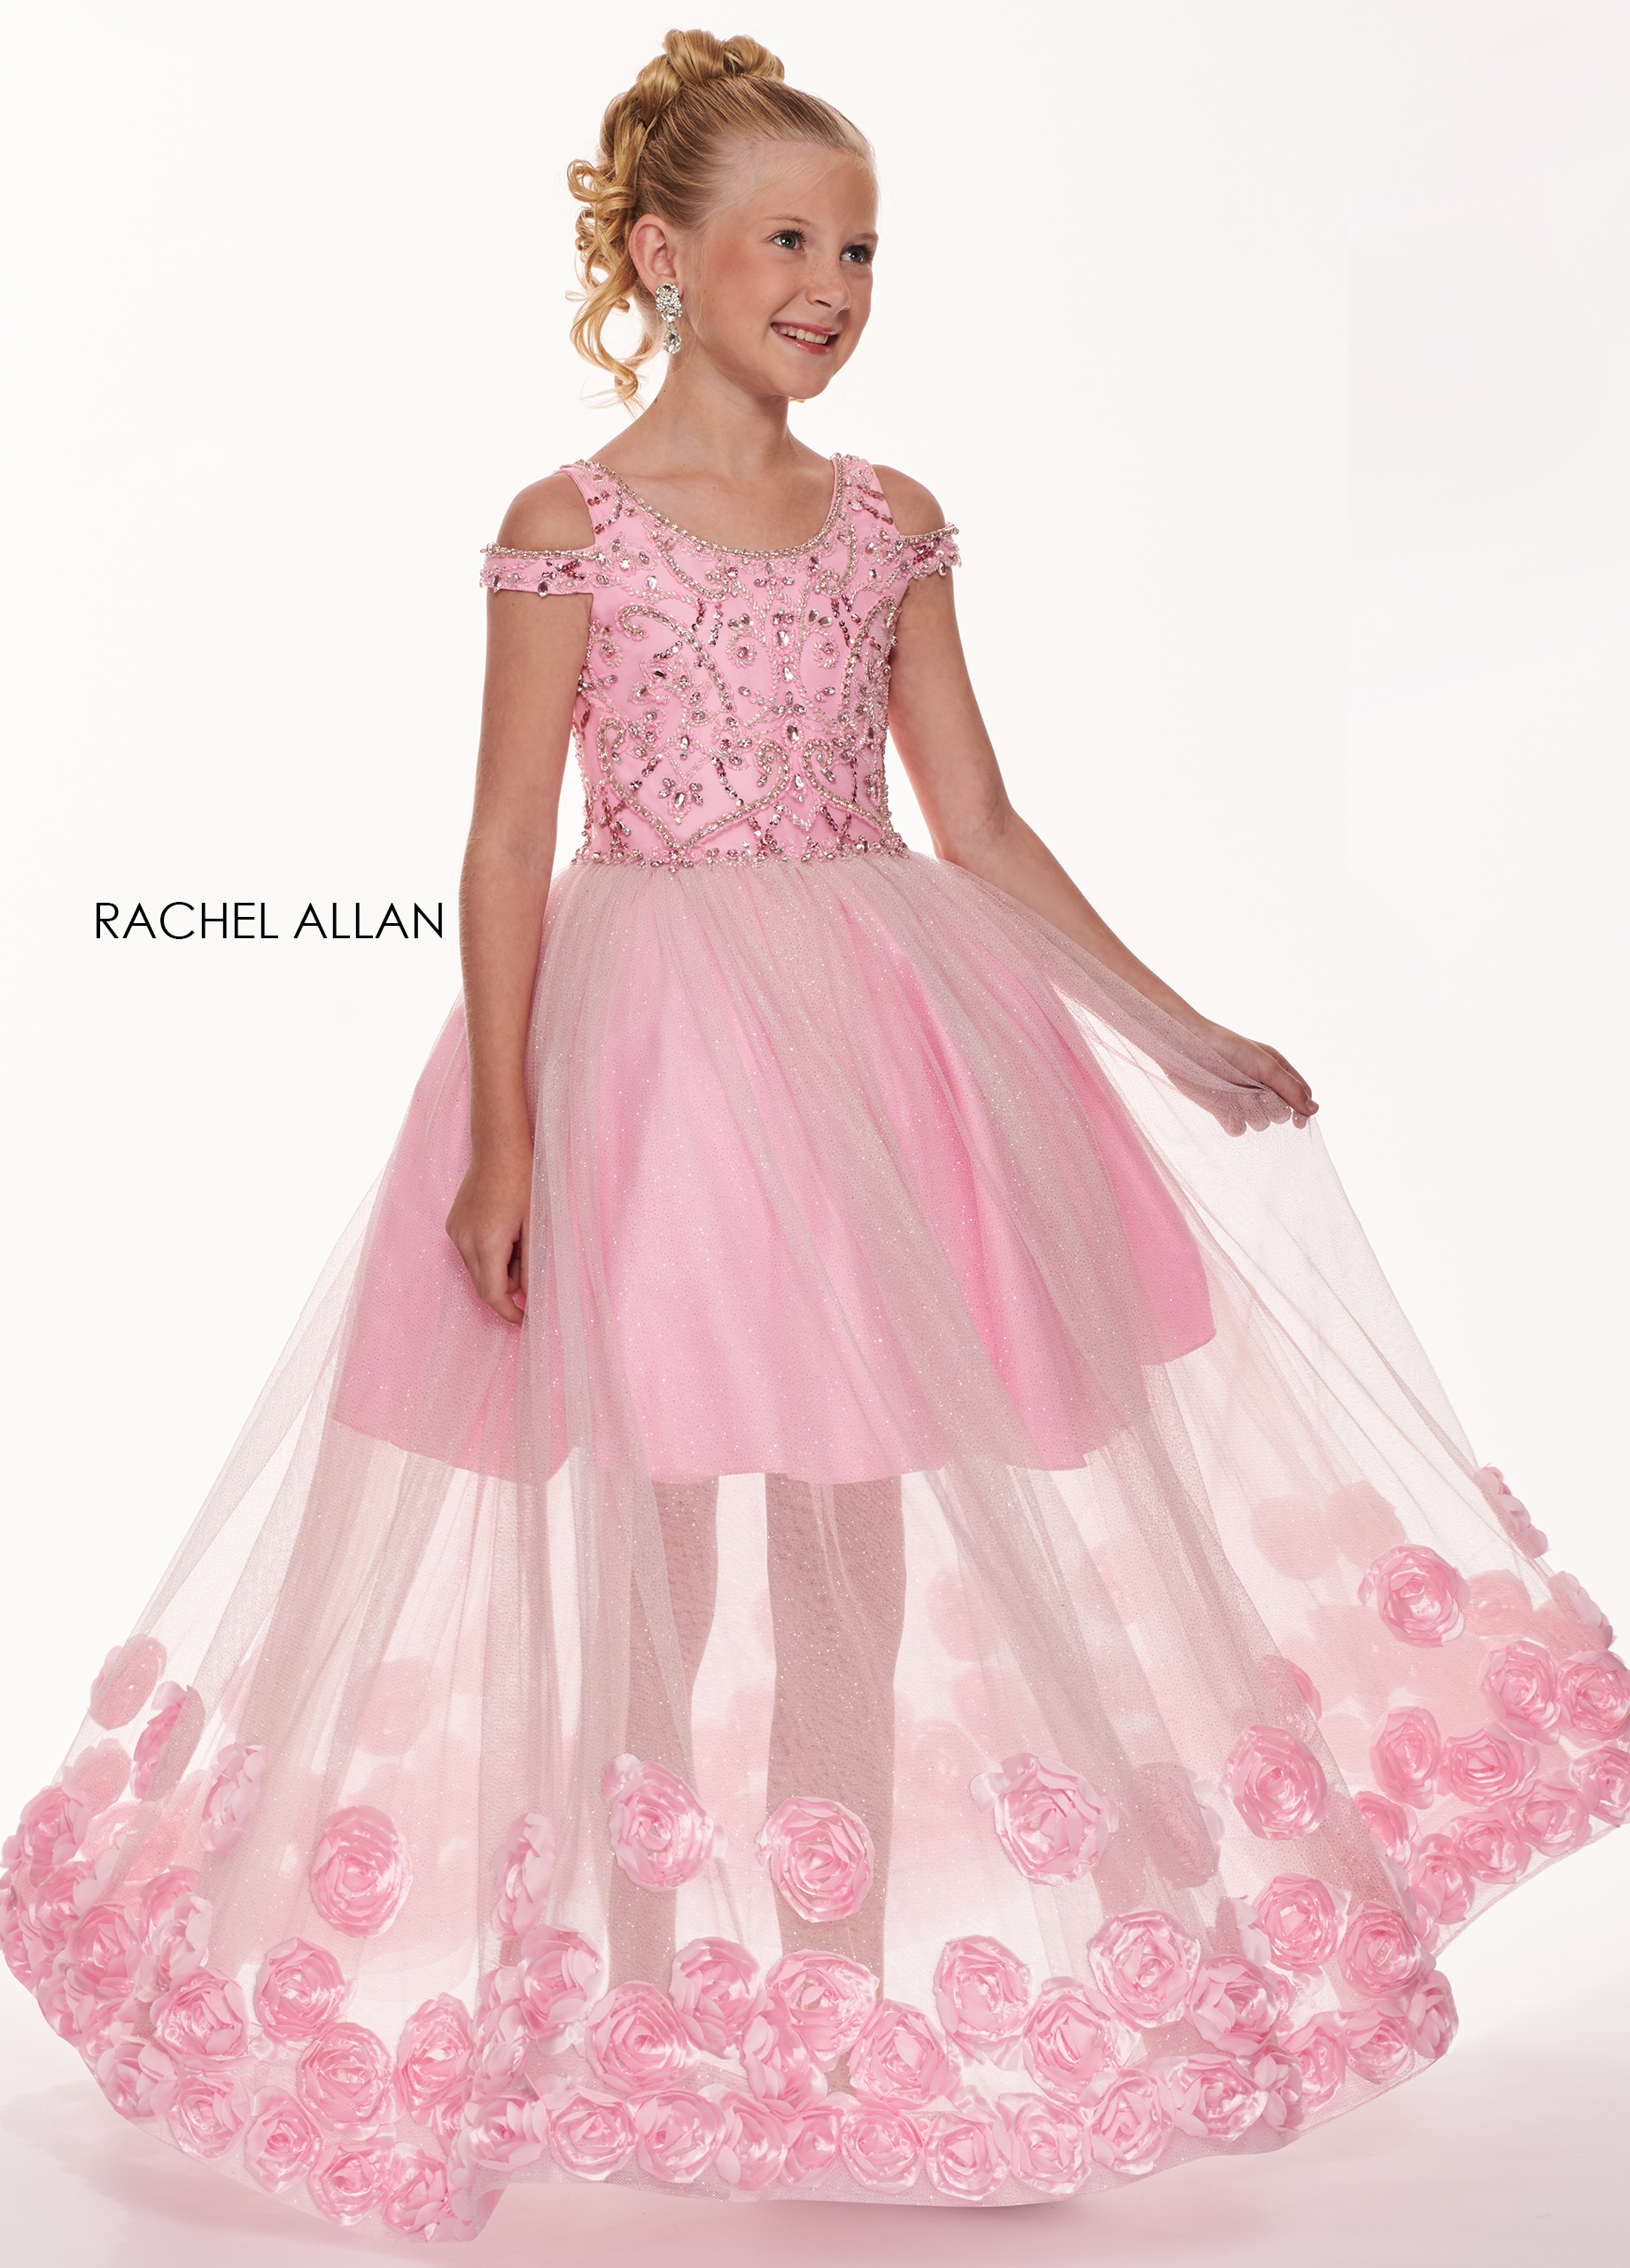 Open Shoulder Skirt With Overlay Little Girl Pageant Dresses in Pink Color